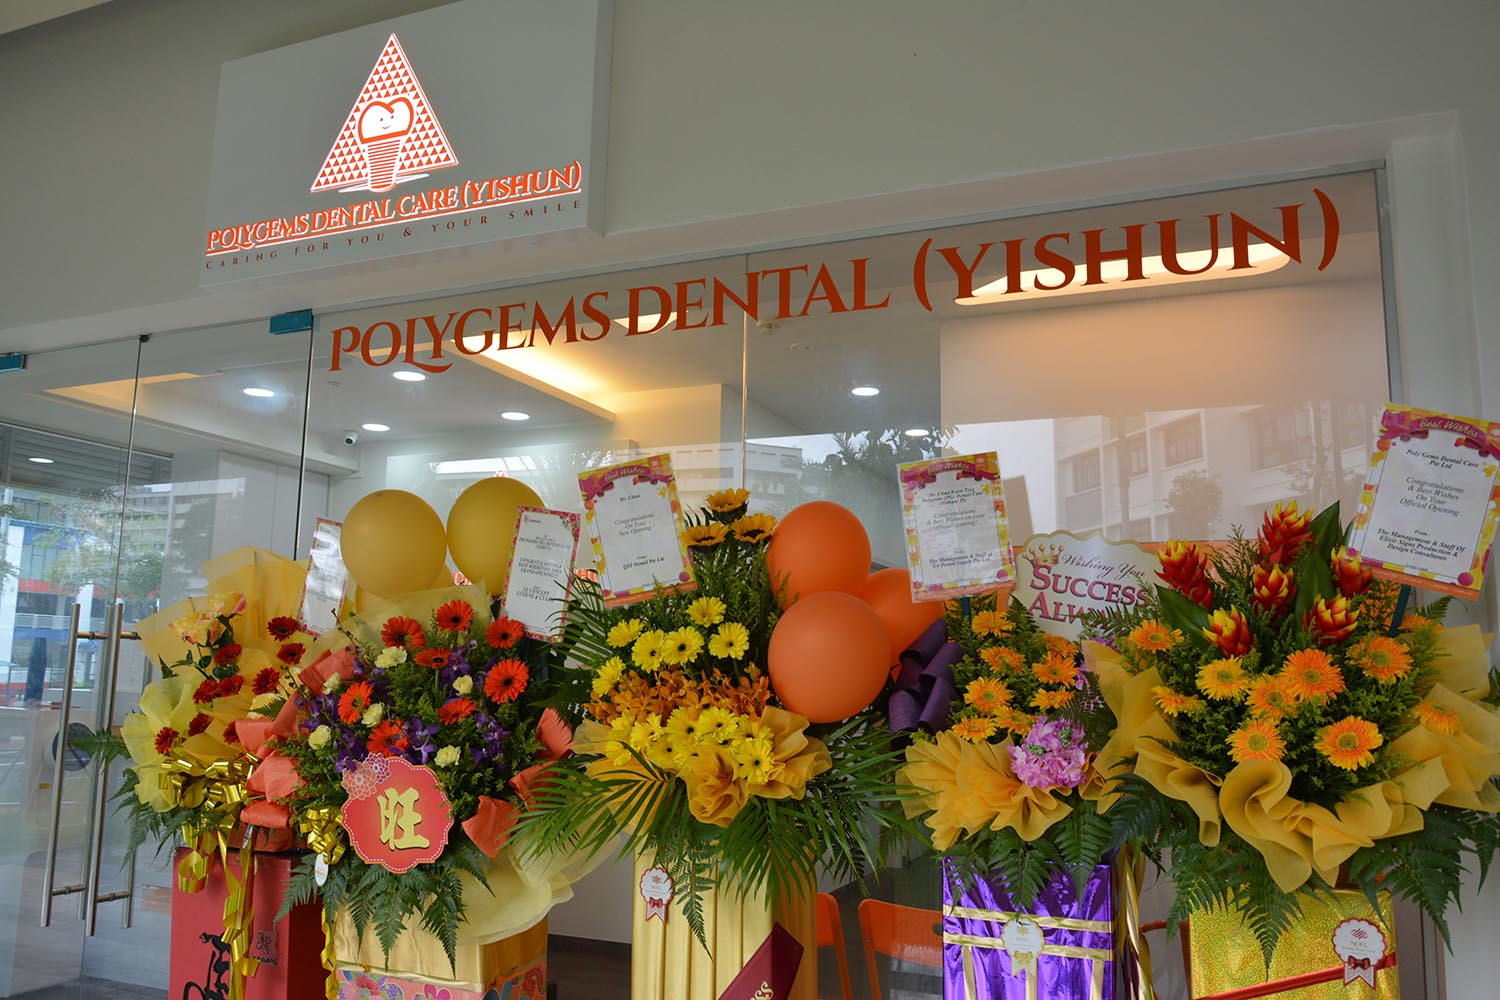 Polygems Dental Care (Yishun)